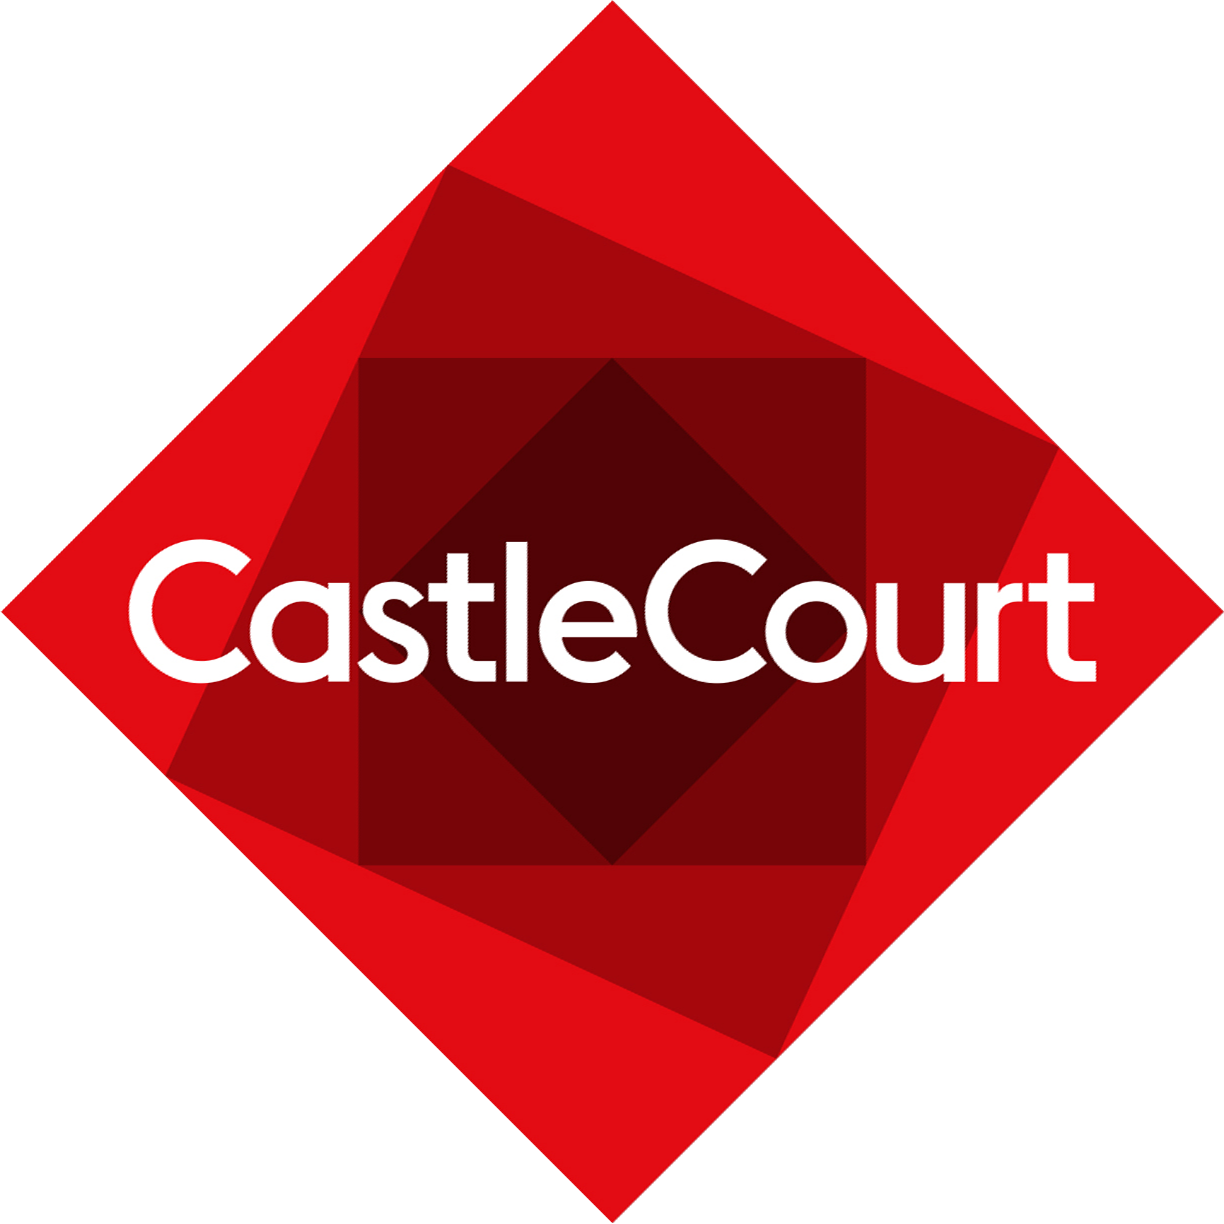 CastleCourt New Logo red diamond